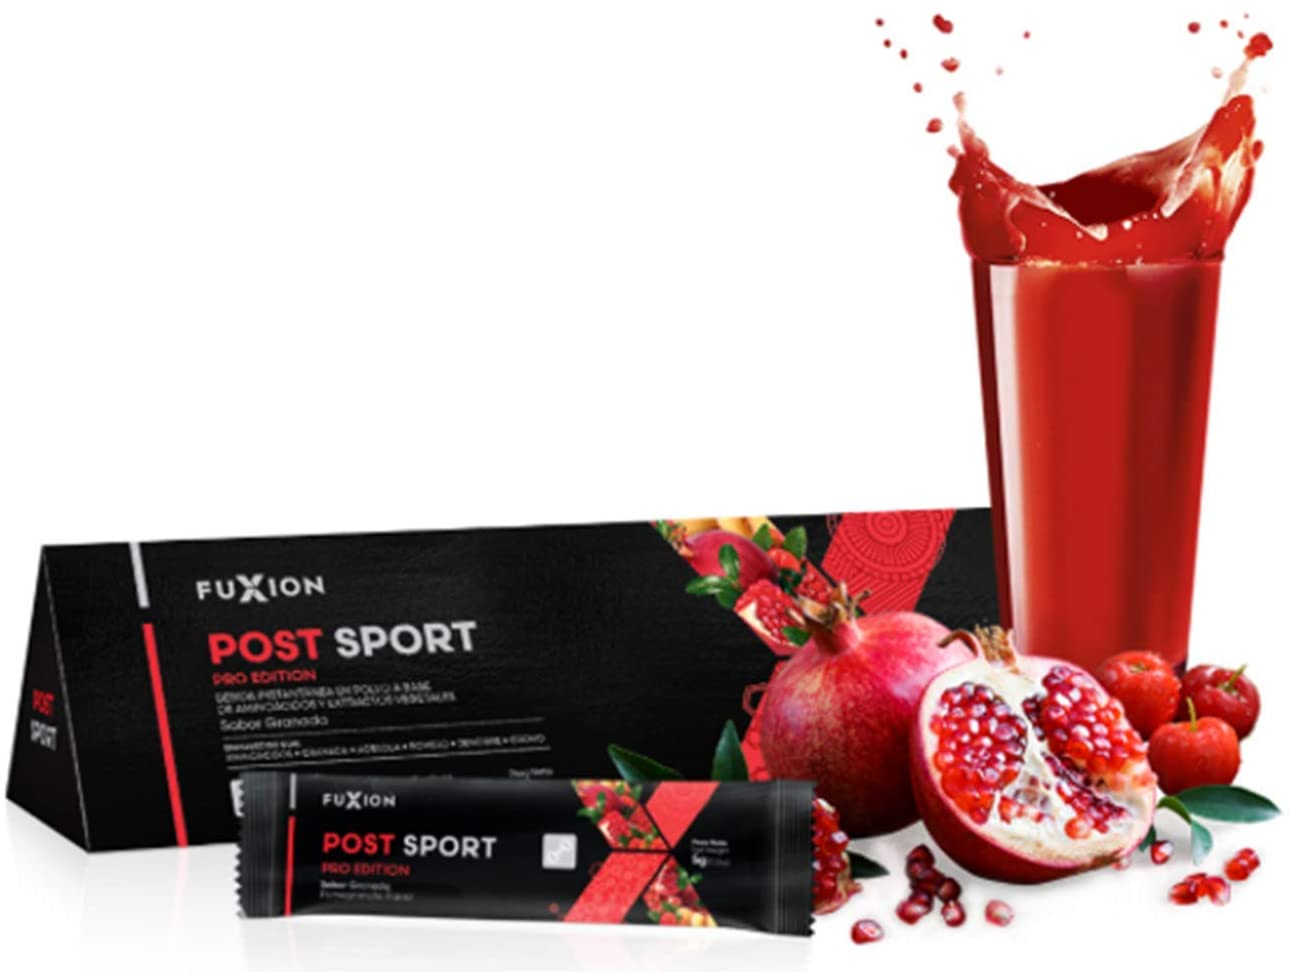 FuXion Post Sport Pro Edition-Nutritious Sport Drink w. BCAAS,Amino Acids,Antioxidants-Promote Body Recovery,Strengthen Muscle Fibers-1 Pouch of 28 Sachets